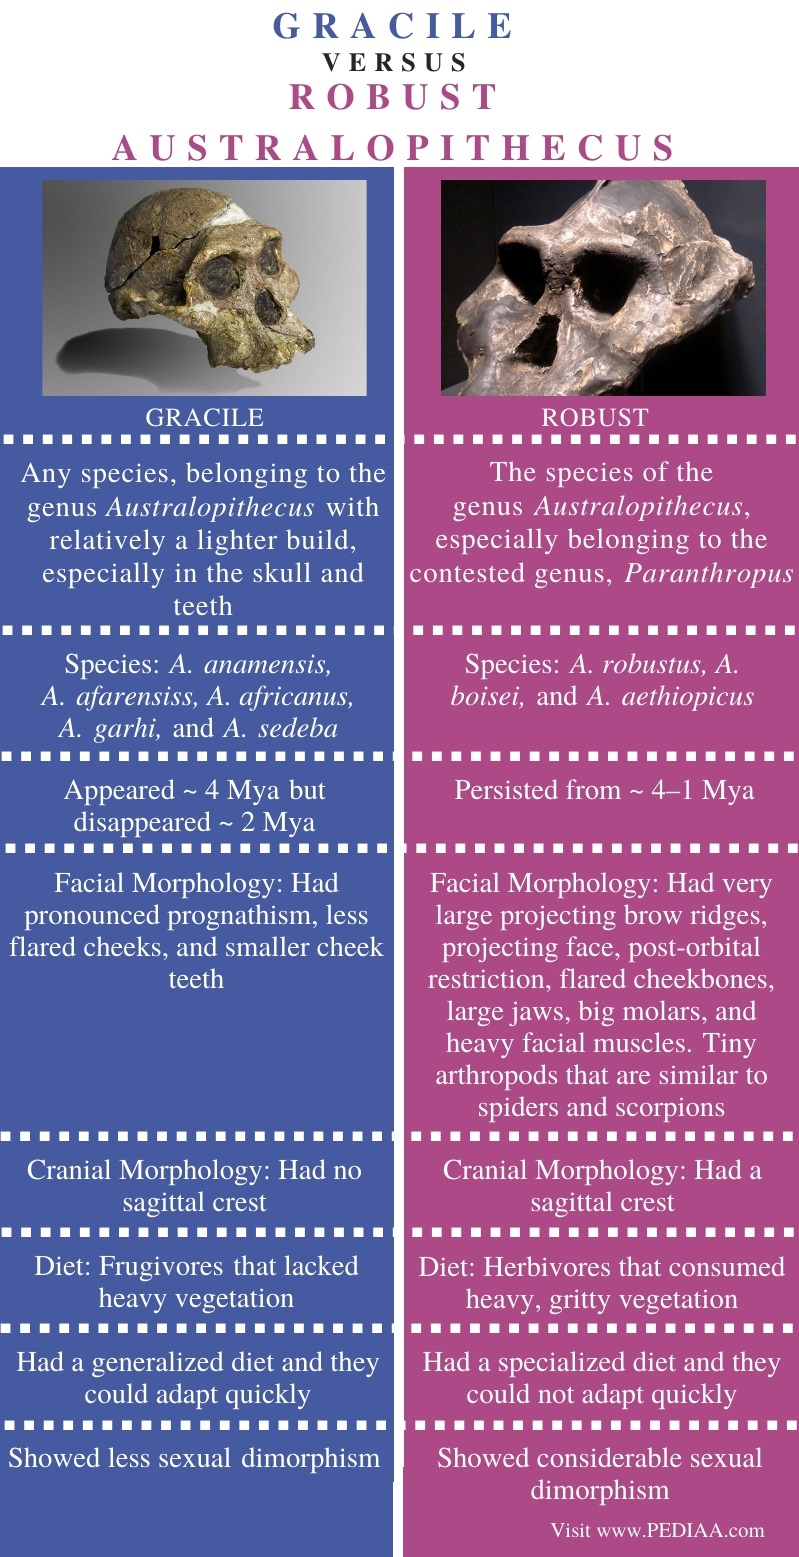 Difference Between Gracile and Robust - Comparison Summary